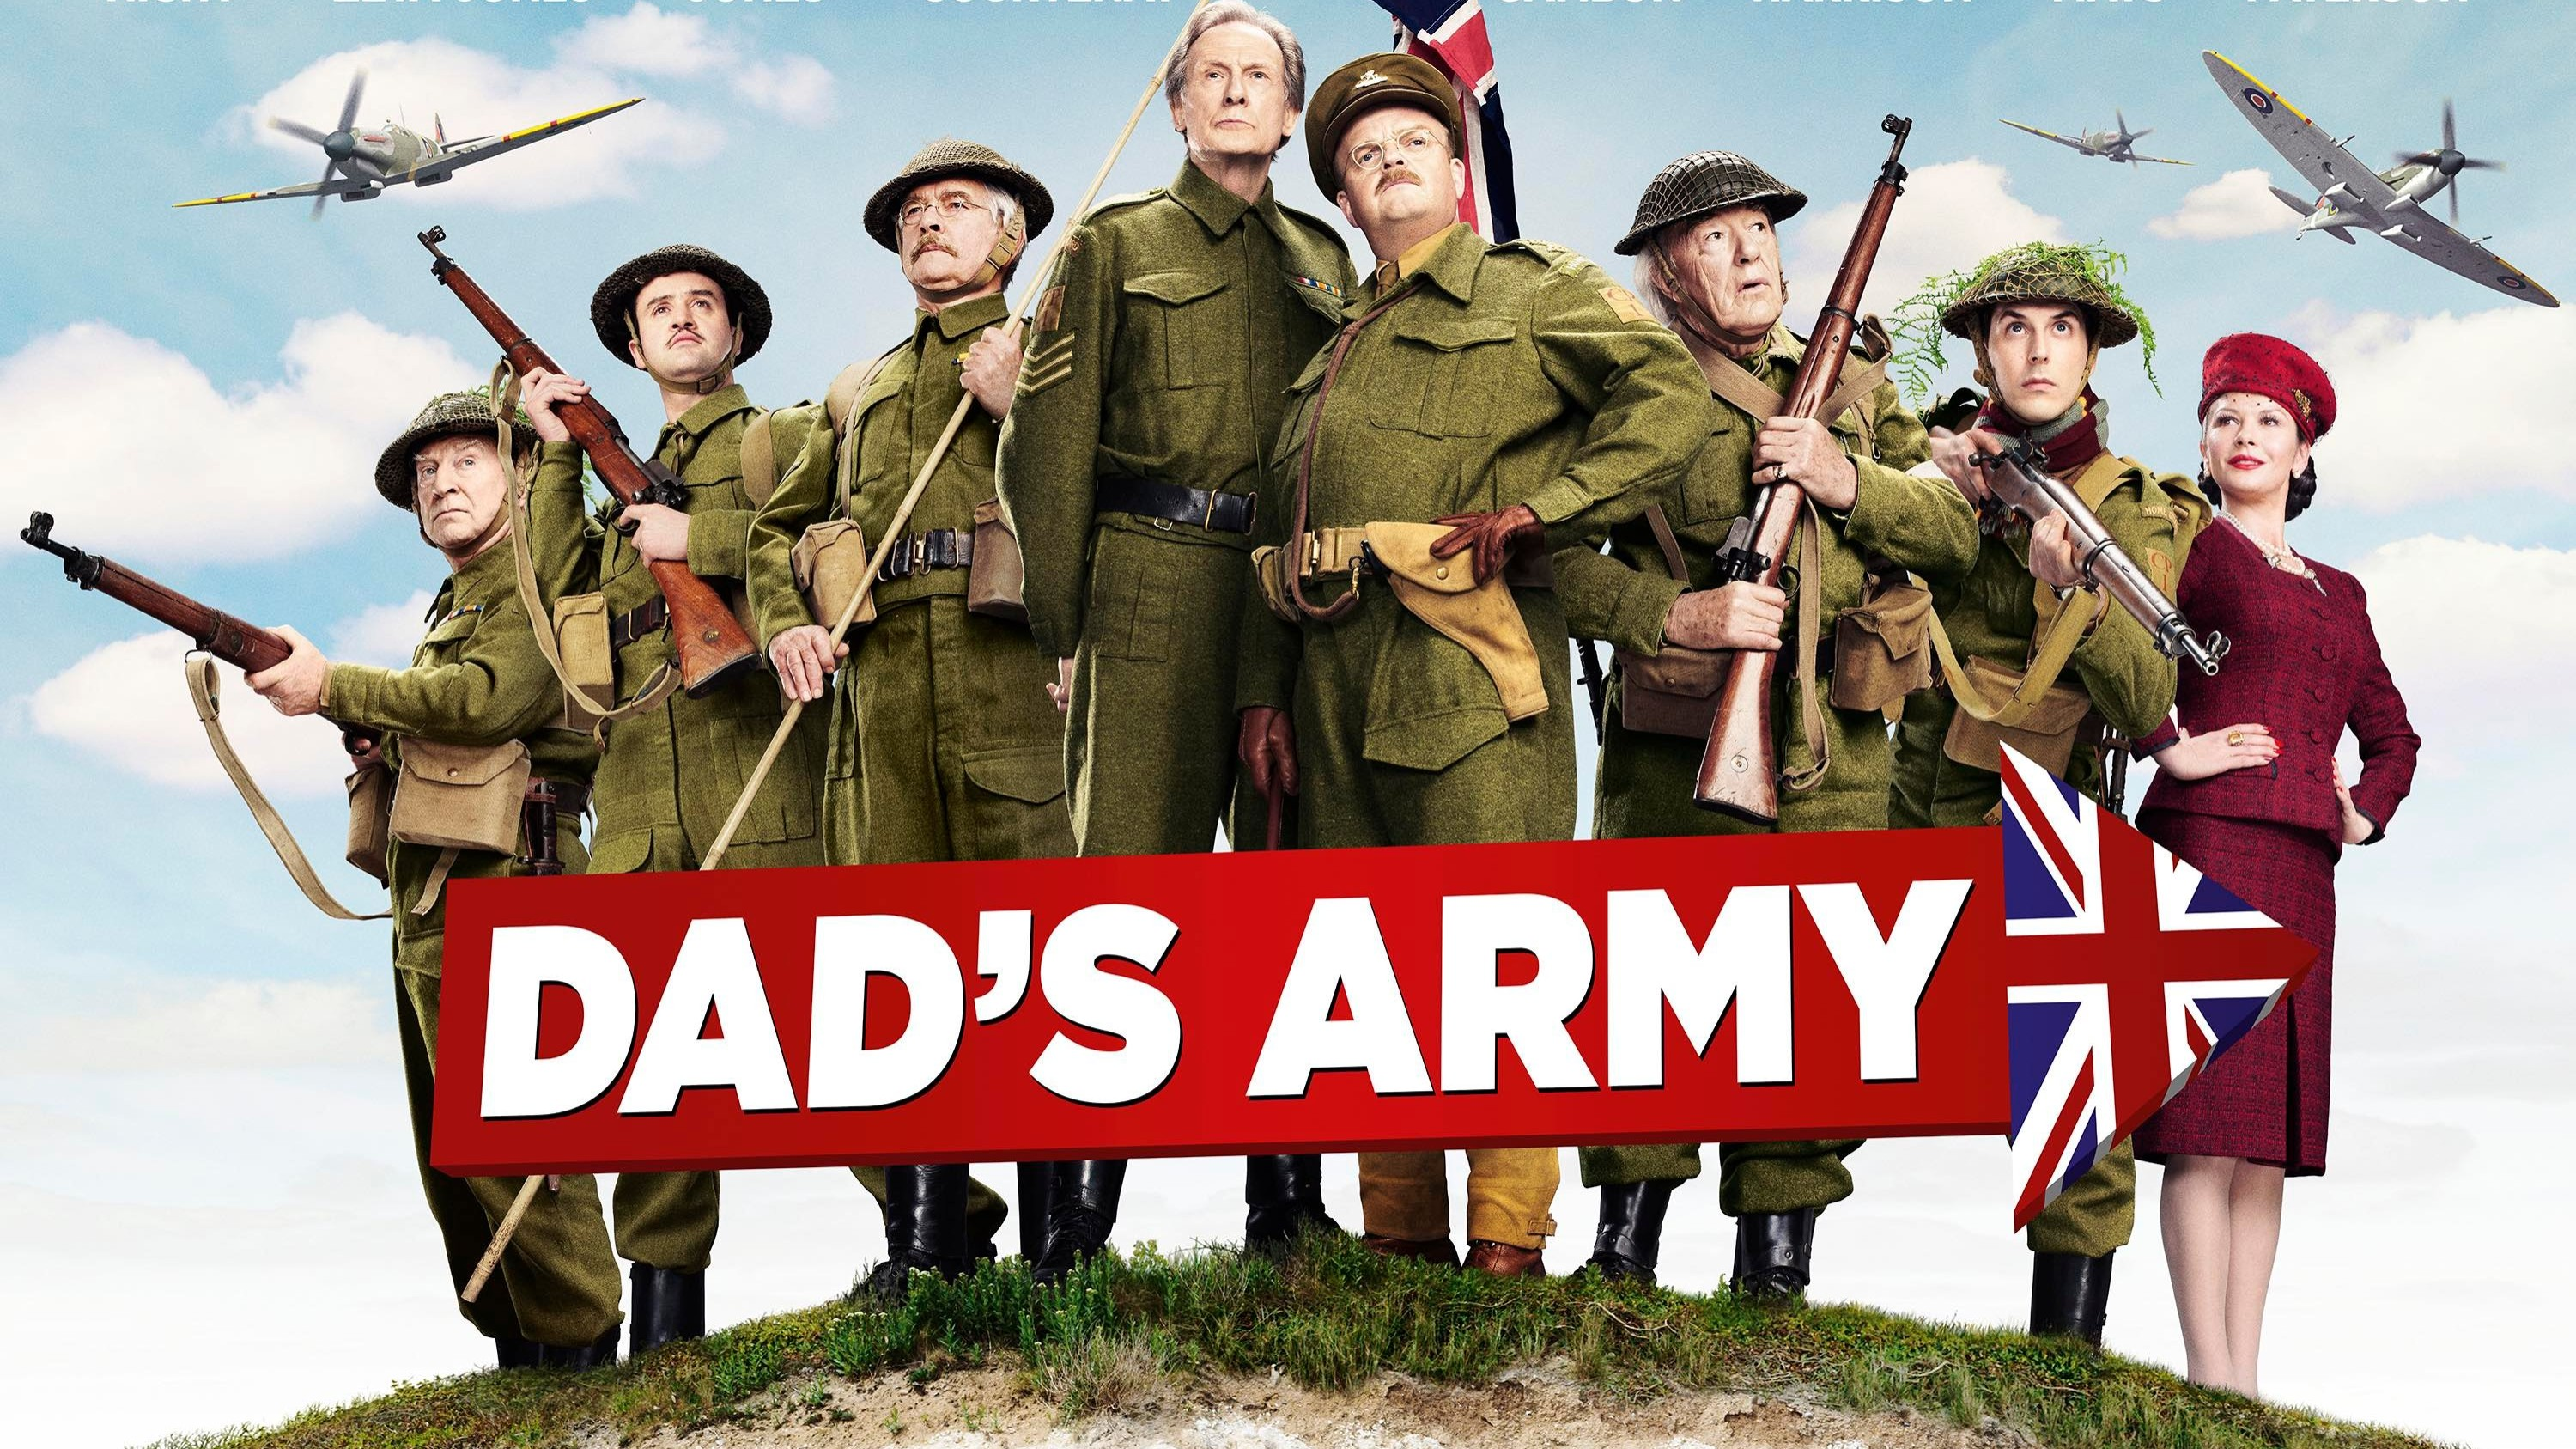 Dad's Army – Official Trailer 2